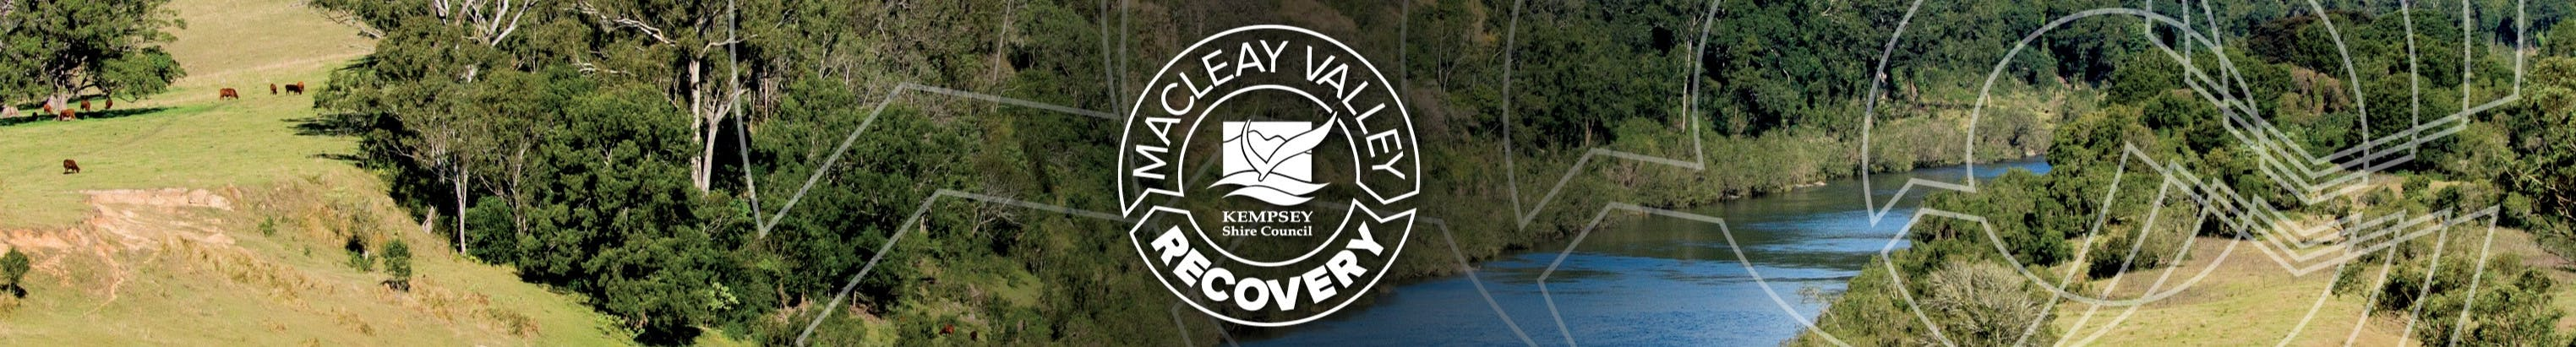 Macleay Valley Recovery